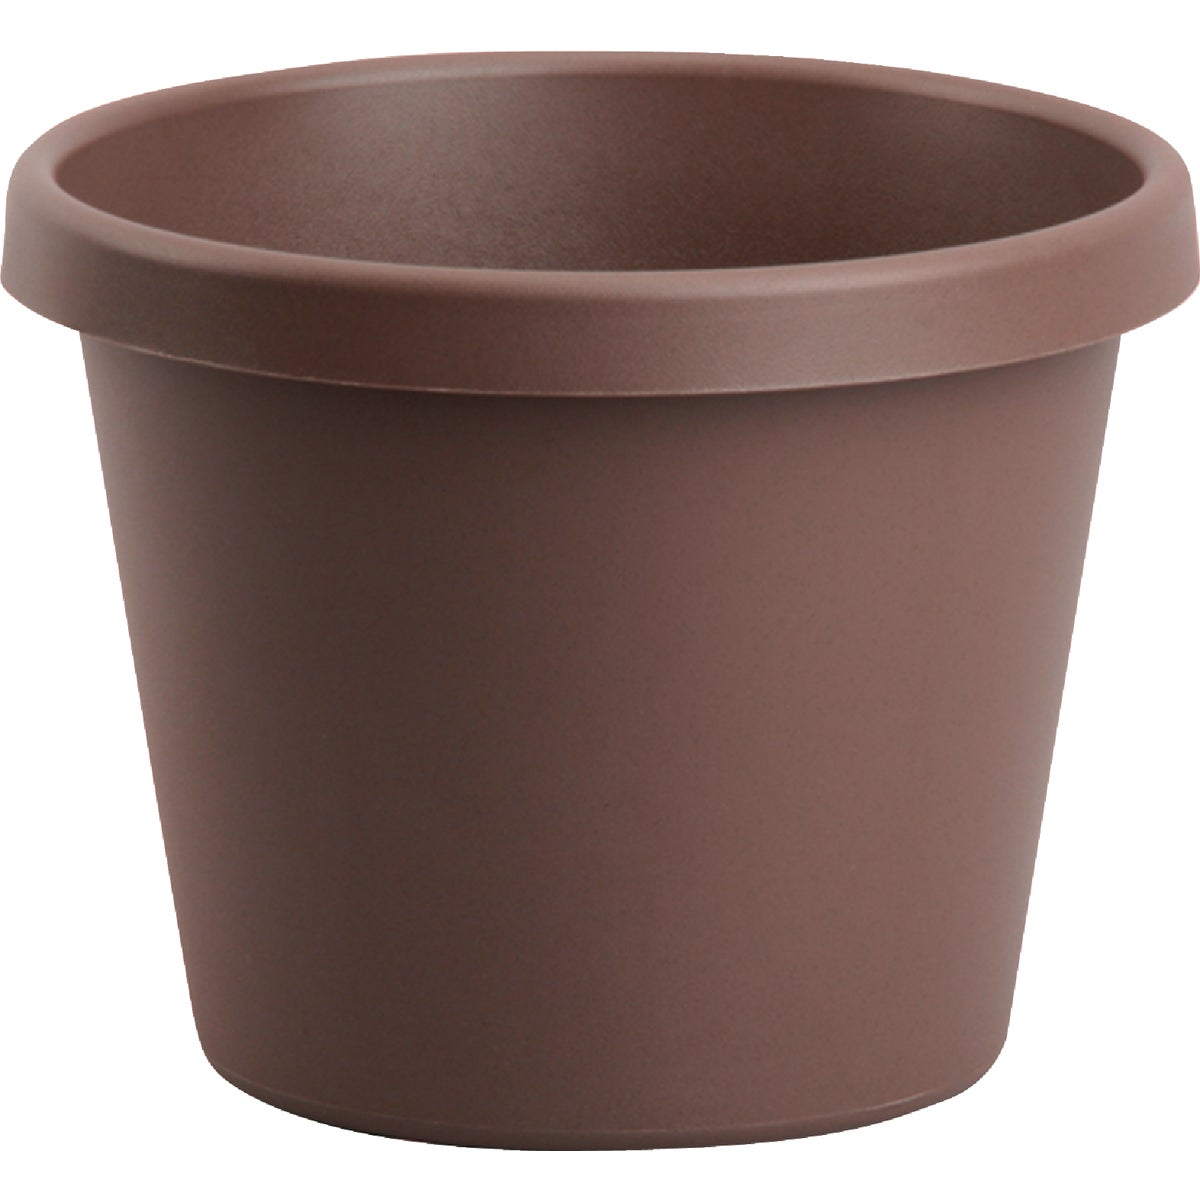 "12"" CHOCOLATE POLY POT - 503152 by Fiskars Brands Inc"